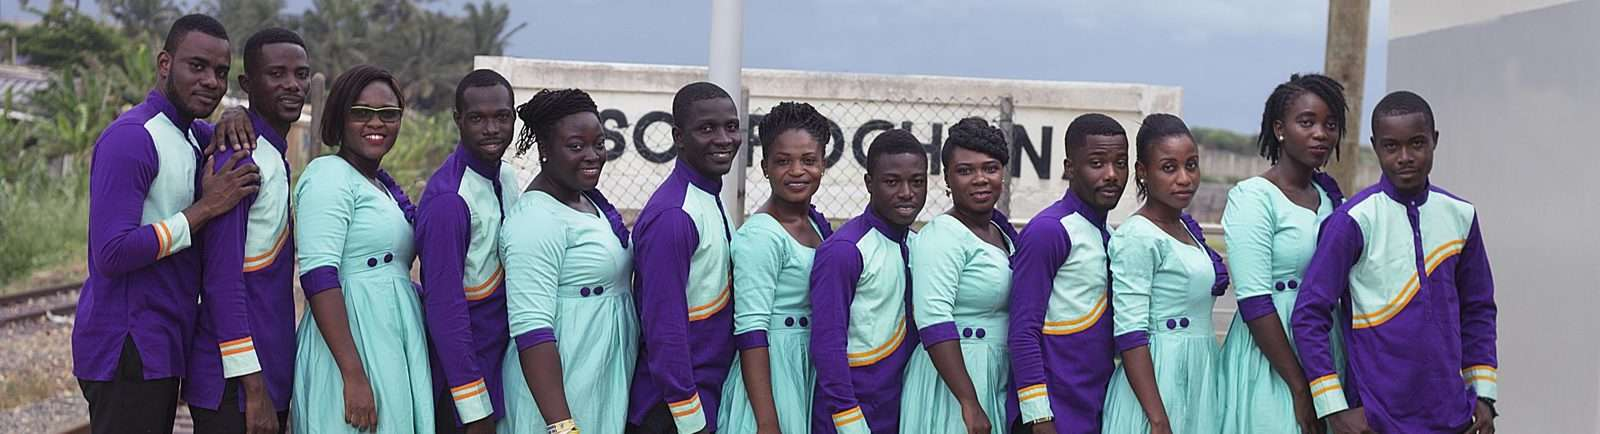 FRIENDS OF GOD INCORPORATED